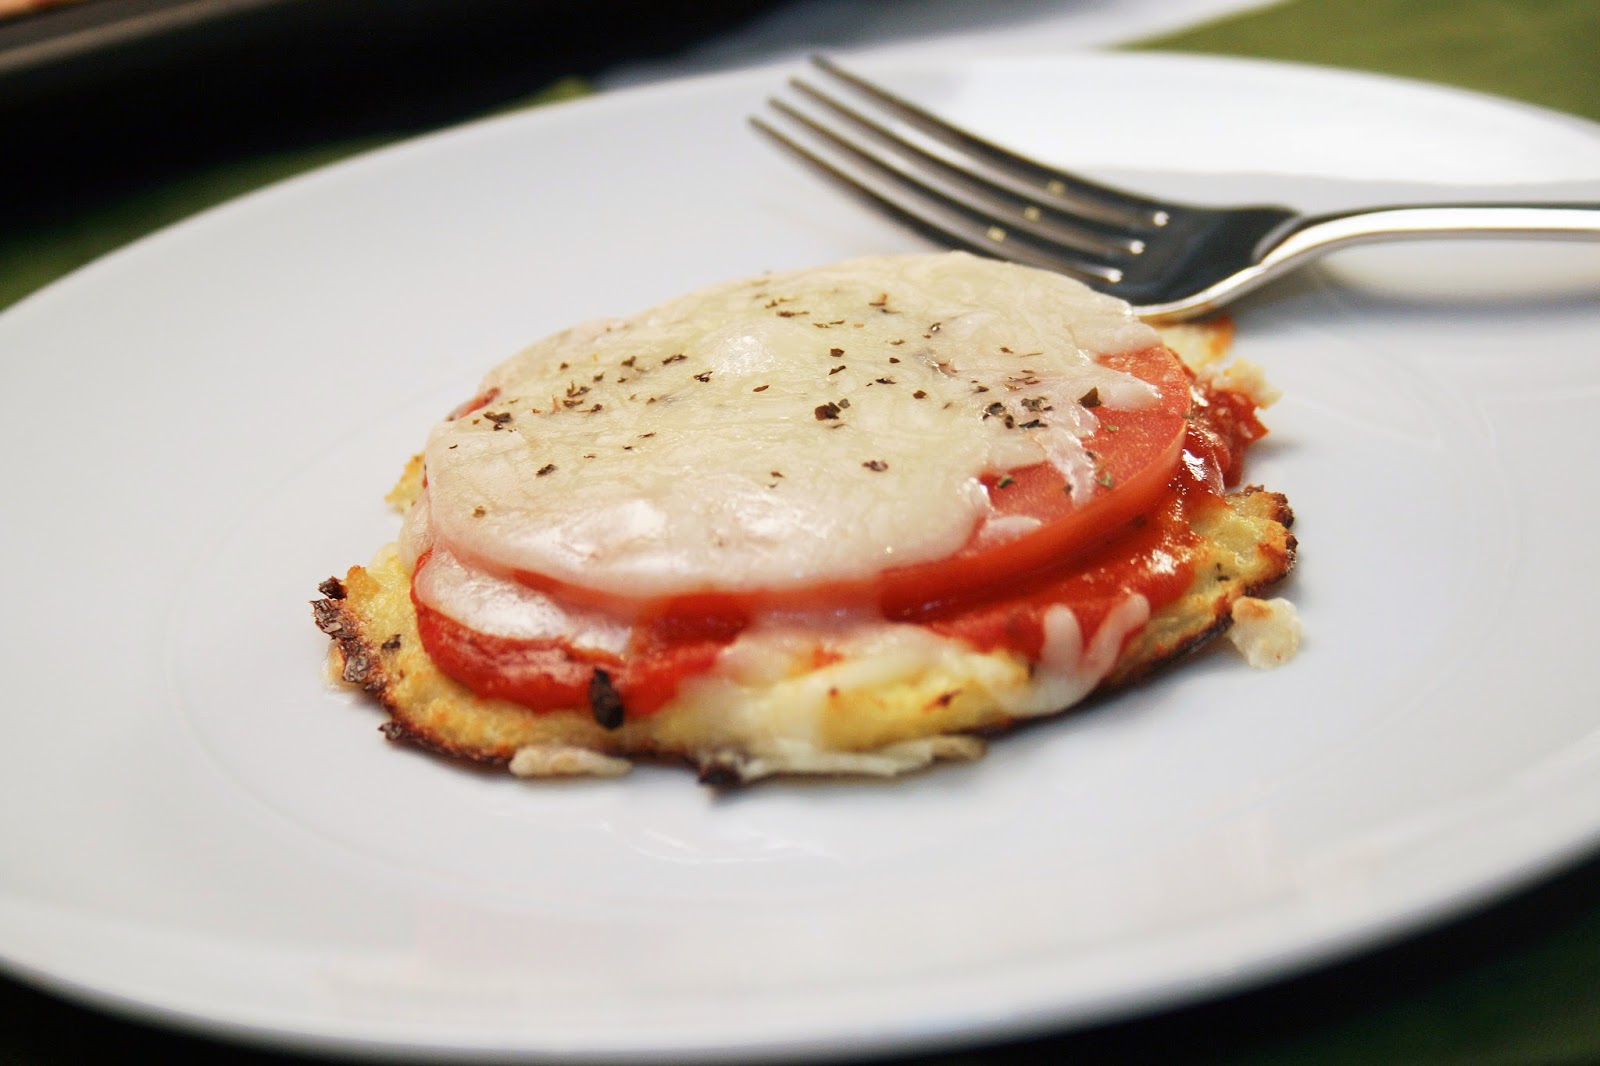 ... from Girl Versus Dough 's Mini Cauliflower Pizza Crusts on Tablespoon